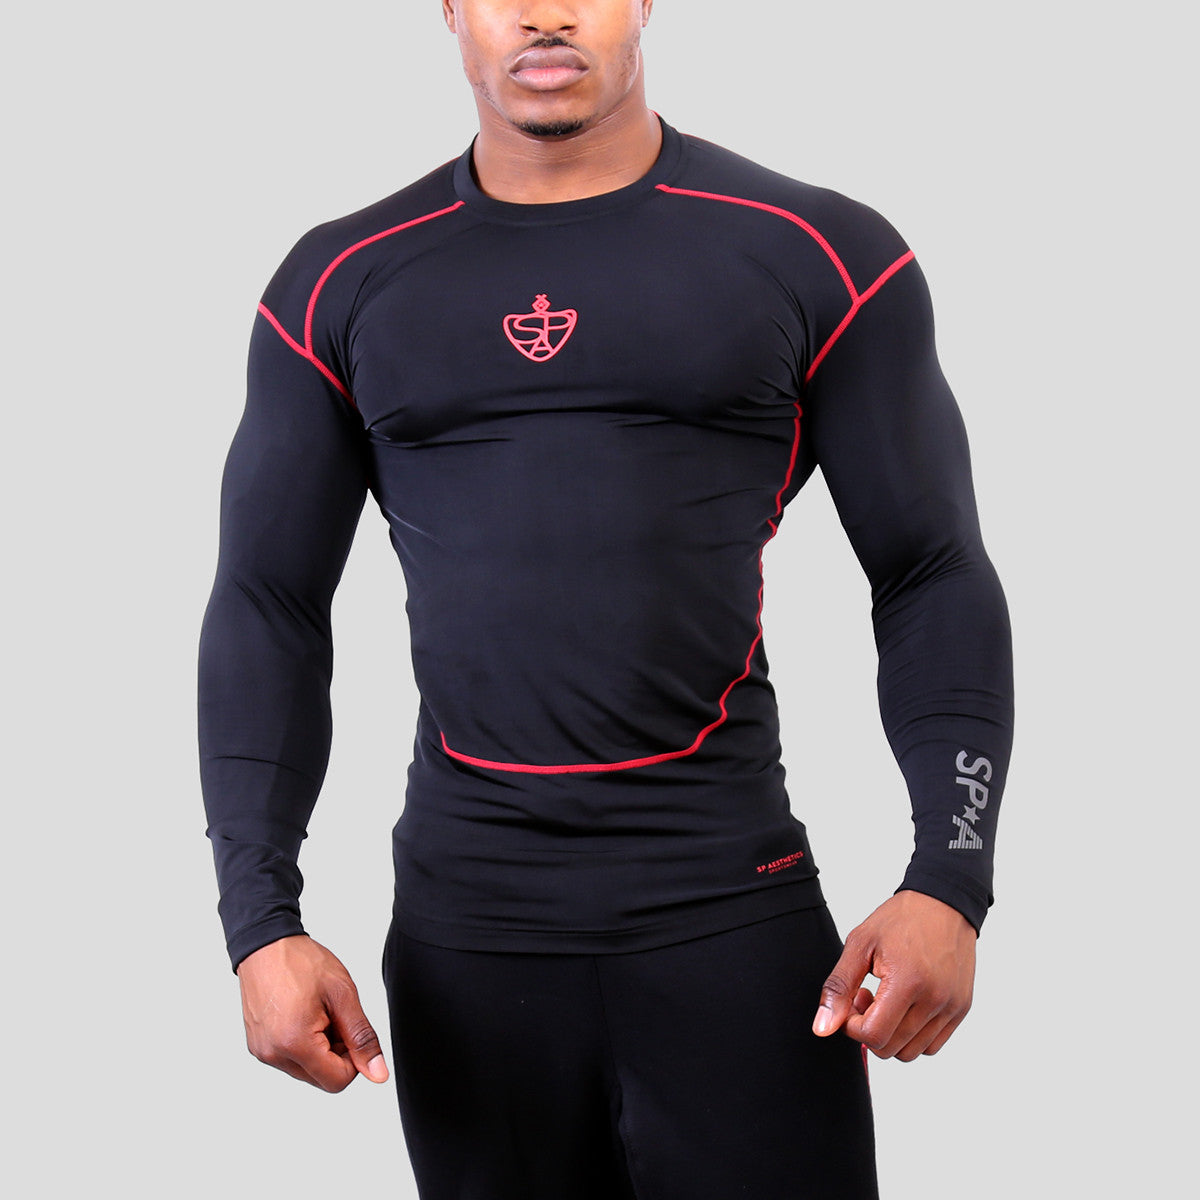 SP Aesthetics 'Optimum 37˚C' Compression Men's Top